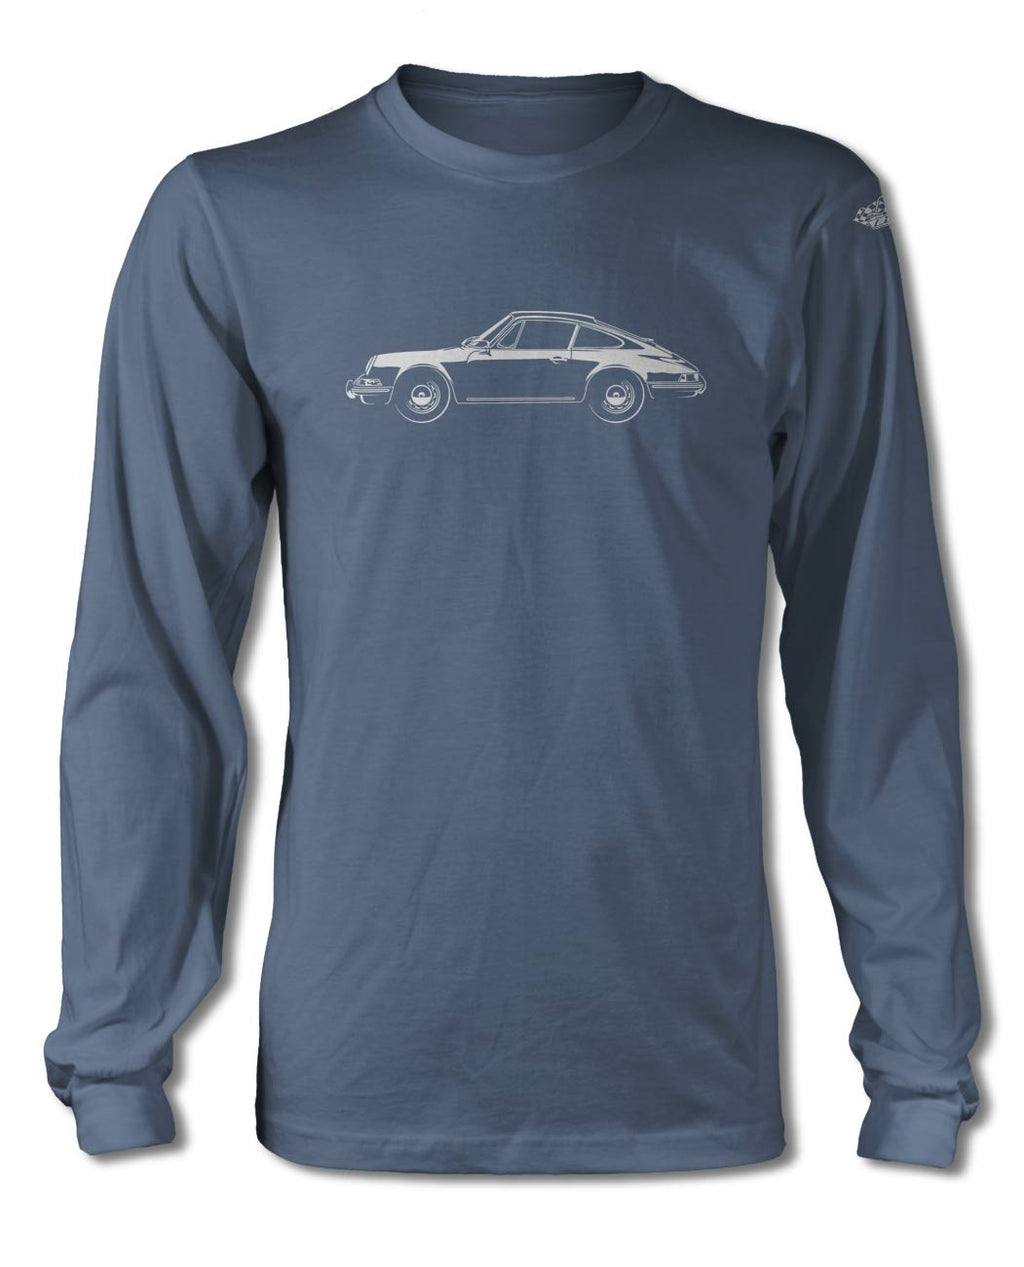 Porsche 911 Coupe T-Shirt - Long Sleeves - Side View